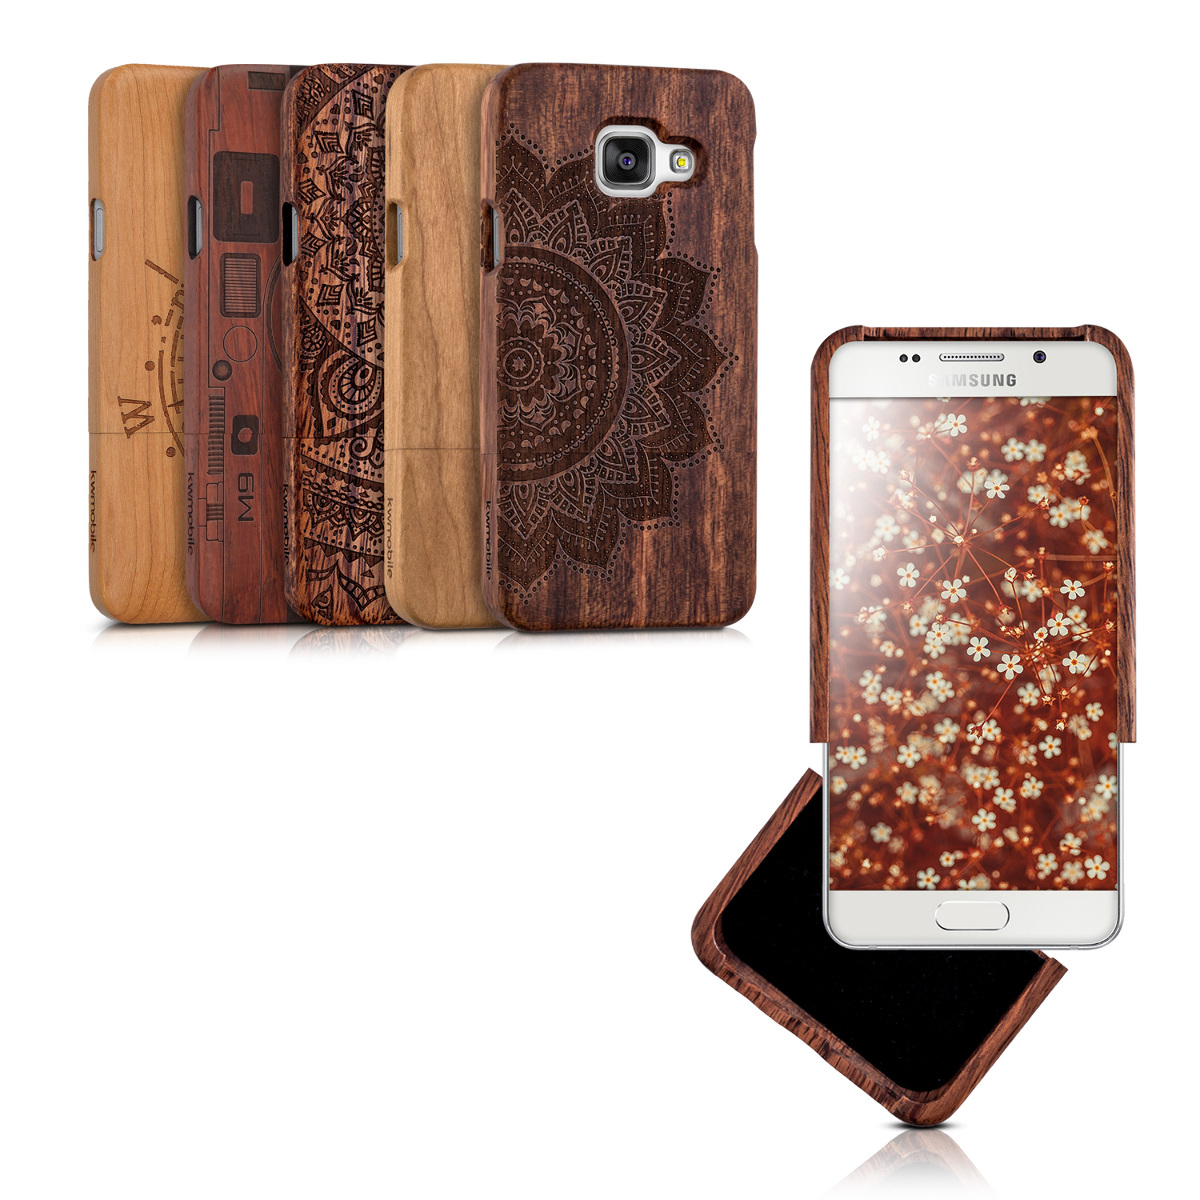 holz hard case f r samsung galaxy a3 2016 cover schutz h lle natur handy ebay. Black Bedroom Furniture Sets. Home Design Ideas